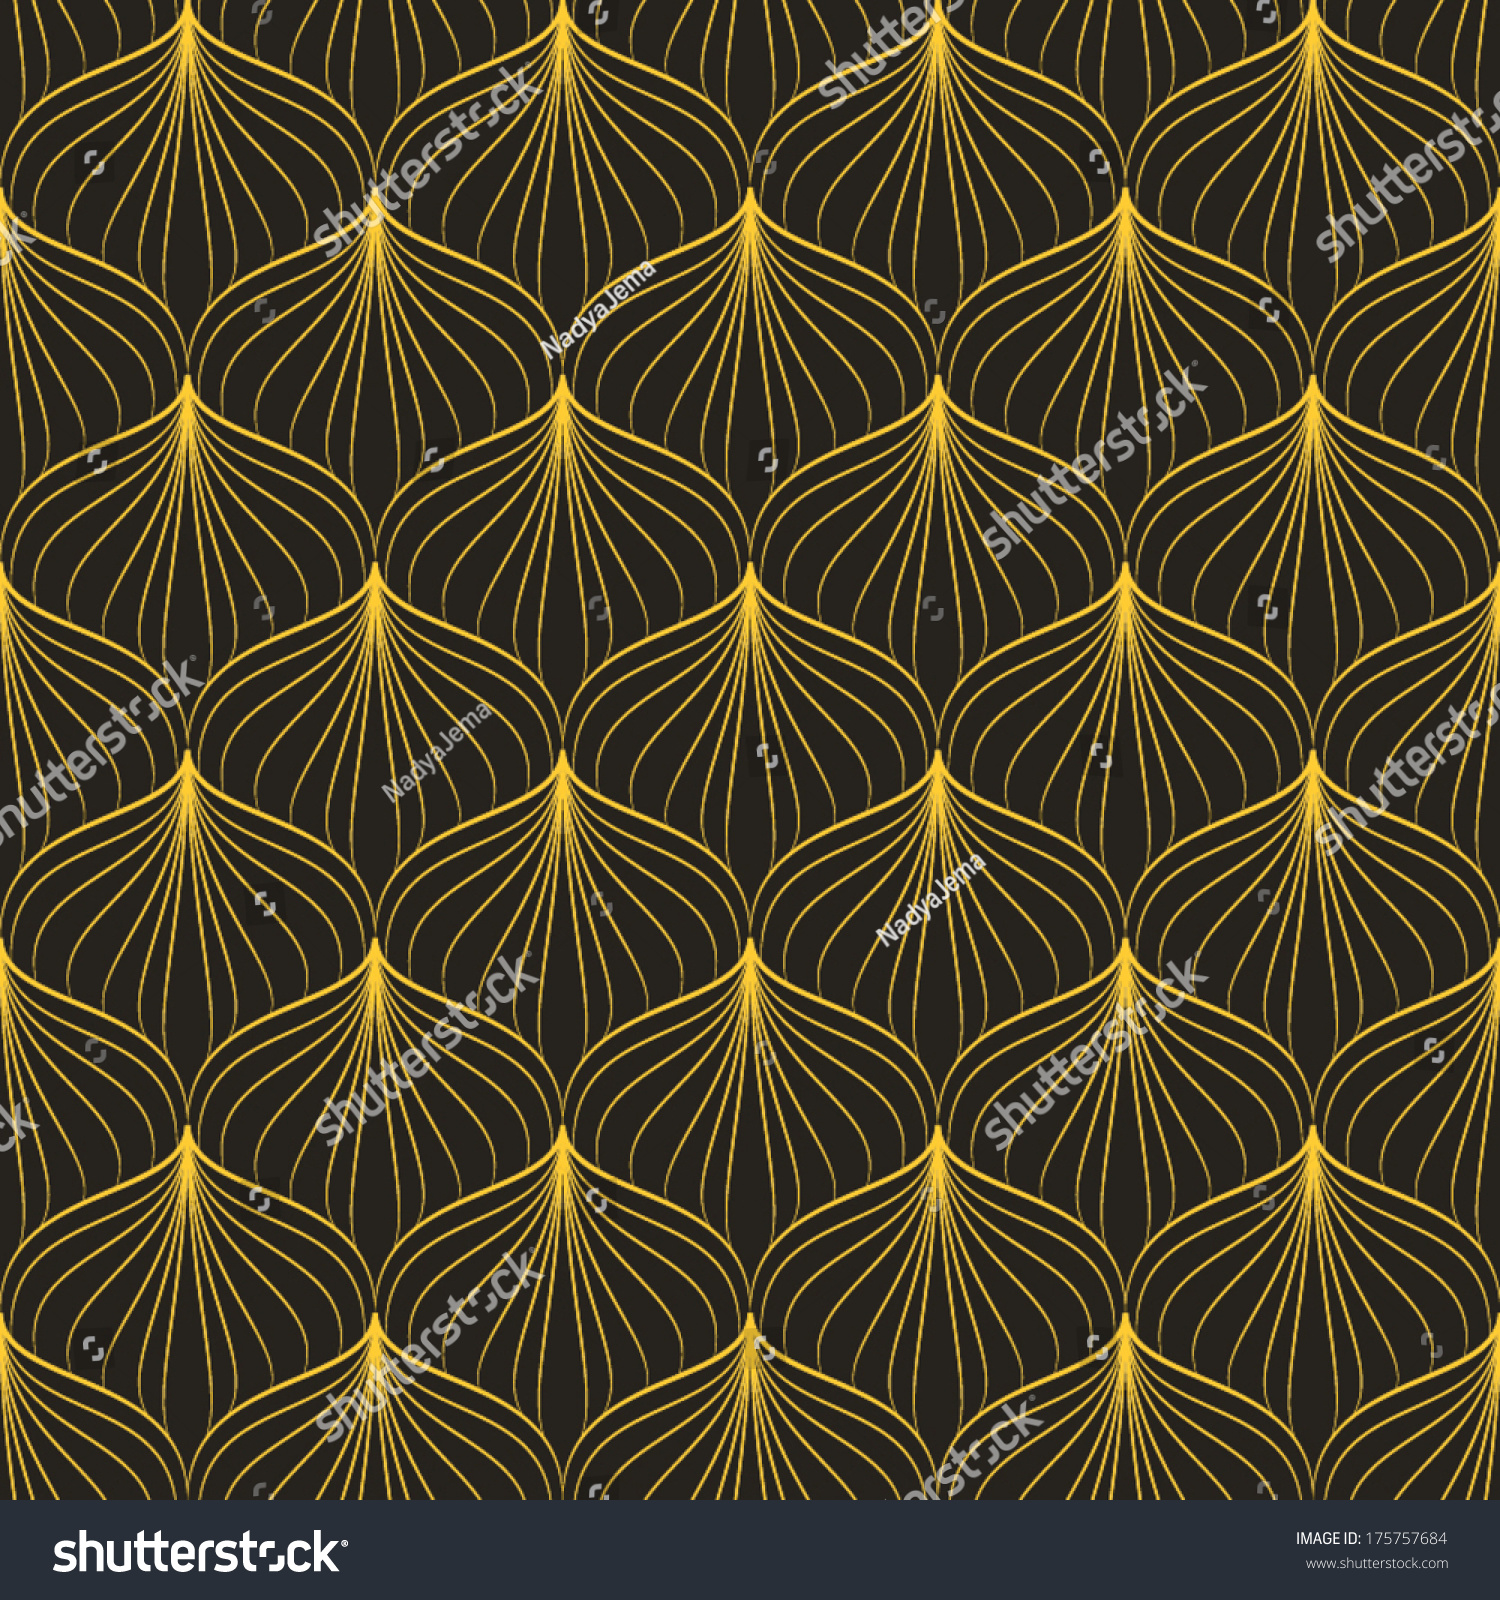 Abstract geometric art deco pattern seamless stock vector for Style retro deco